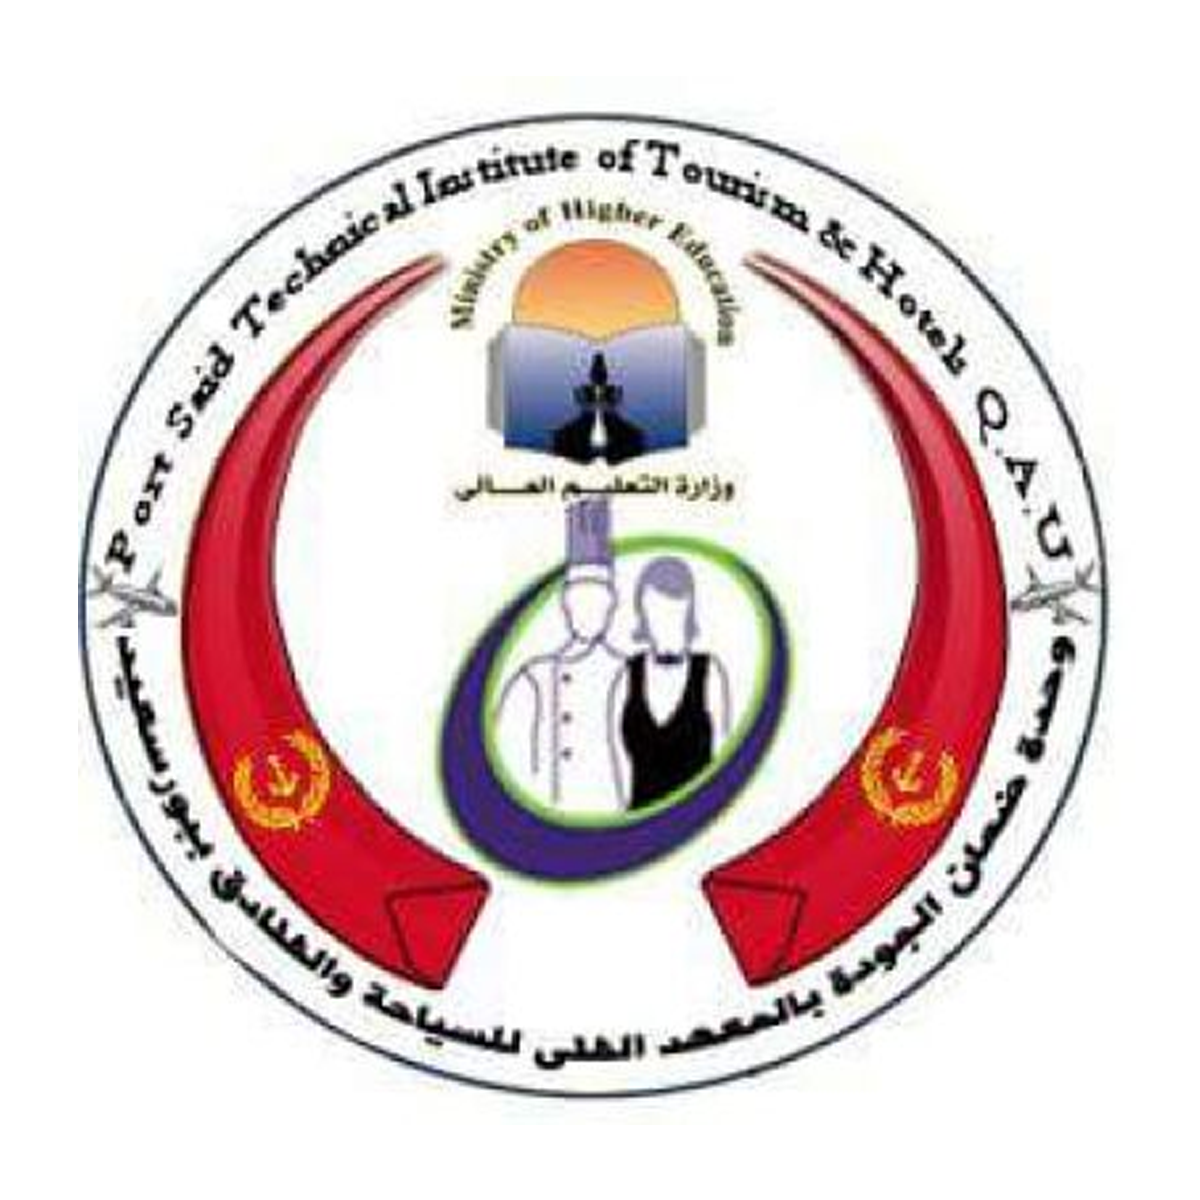 Technical Institute for Tourism and Hotels - Port Said